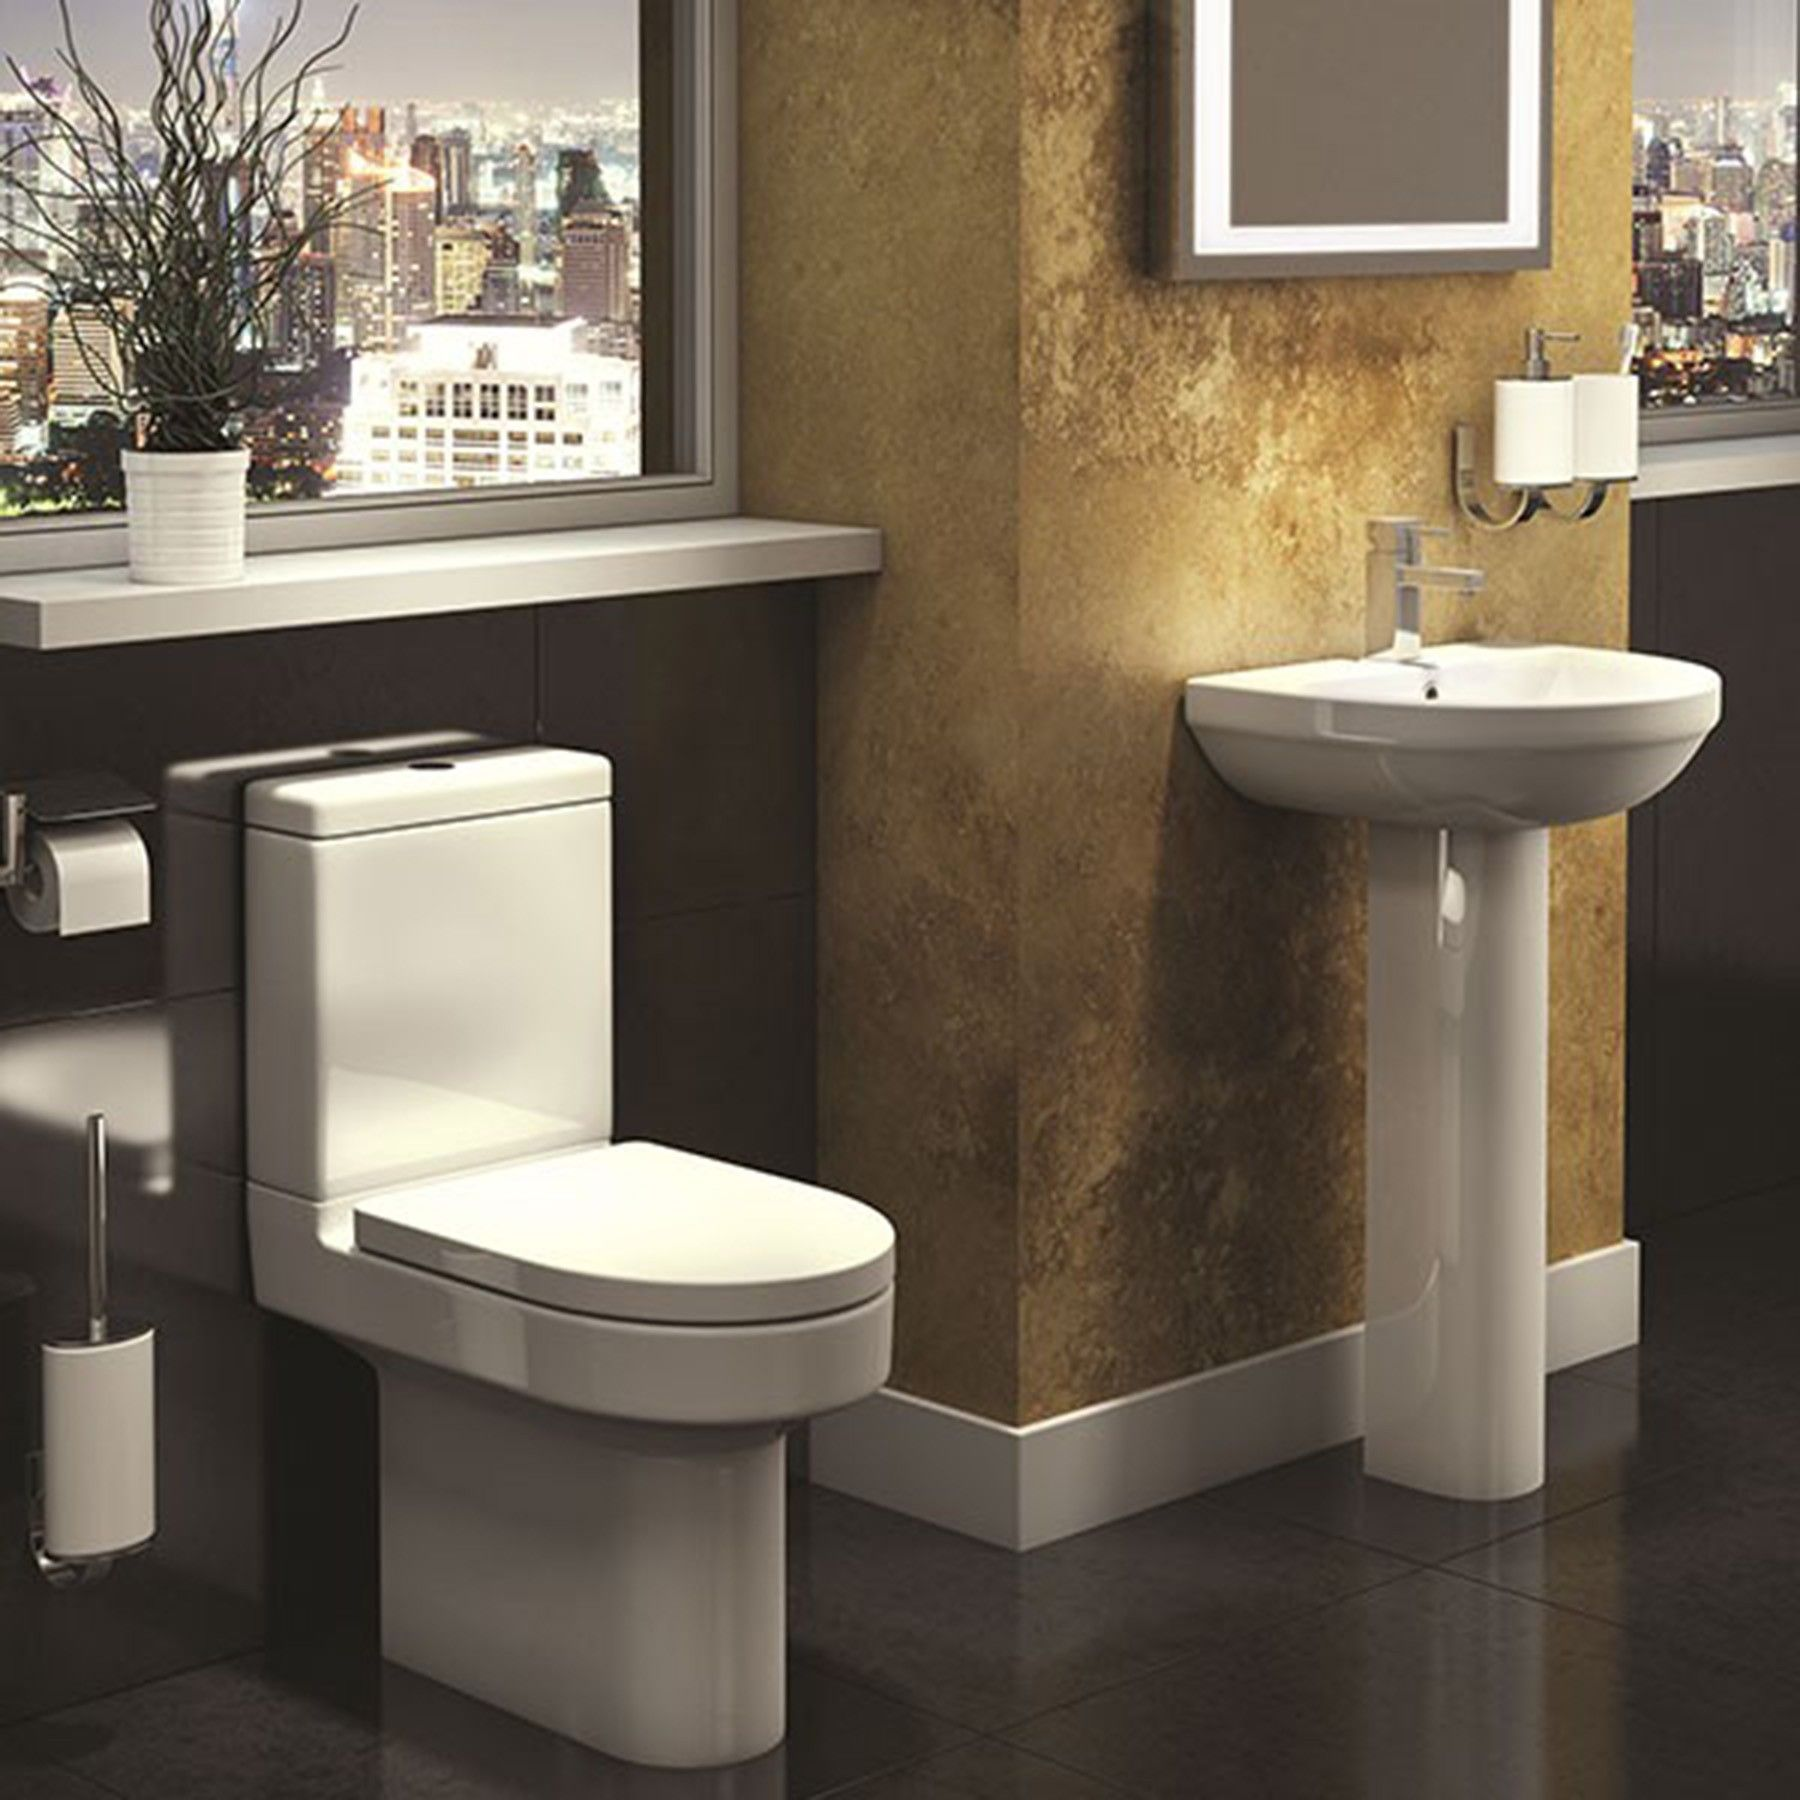 Shop a wide range of latest designs in our bathroom suites. Browse ...